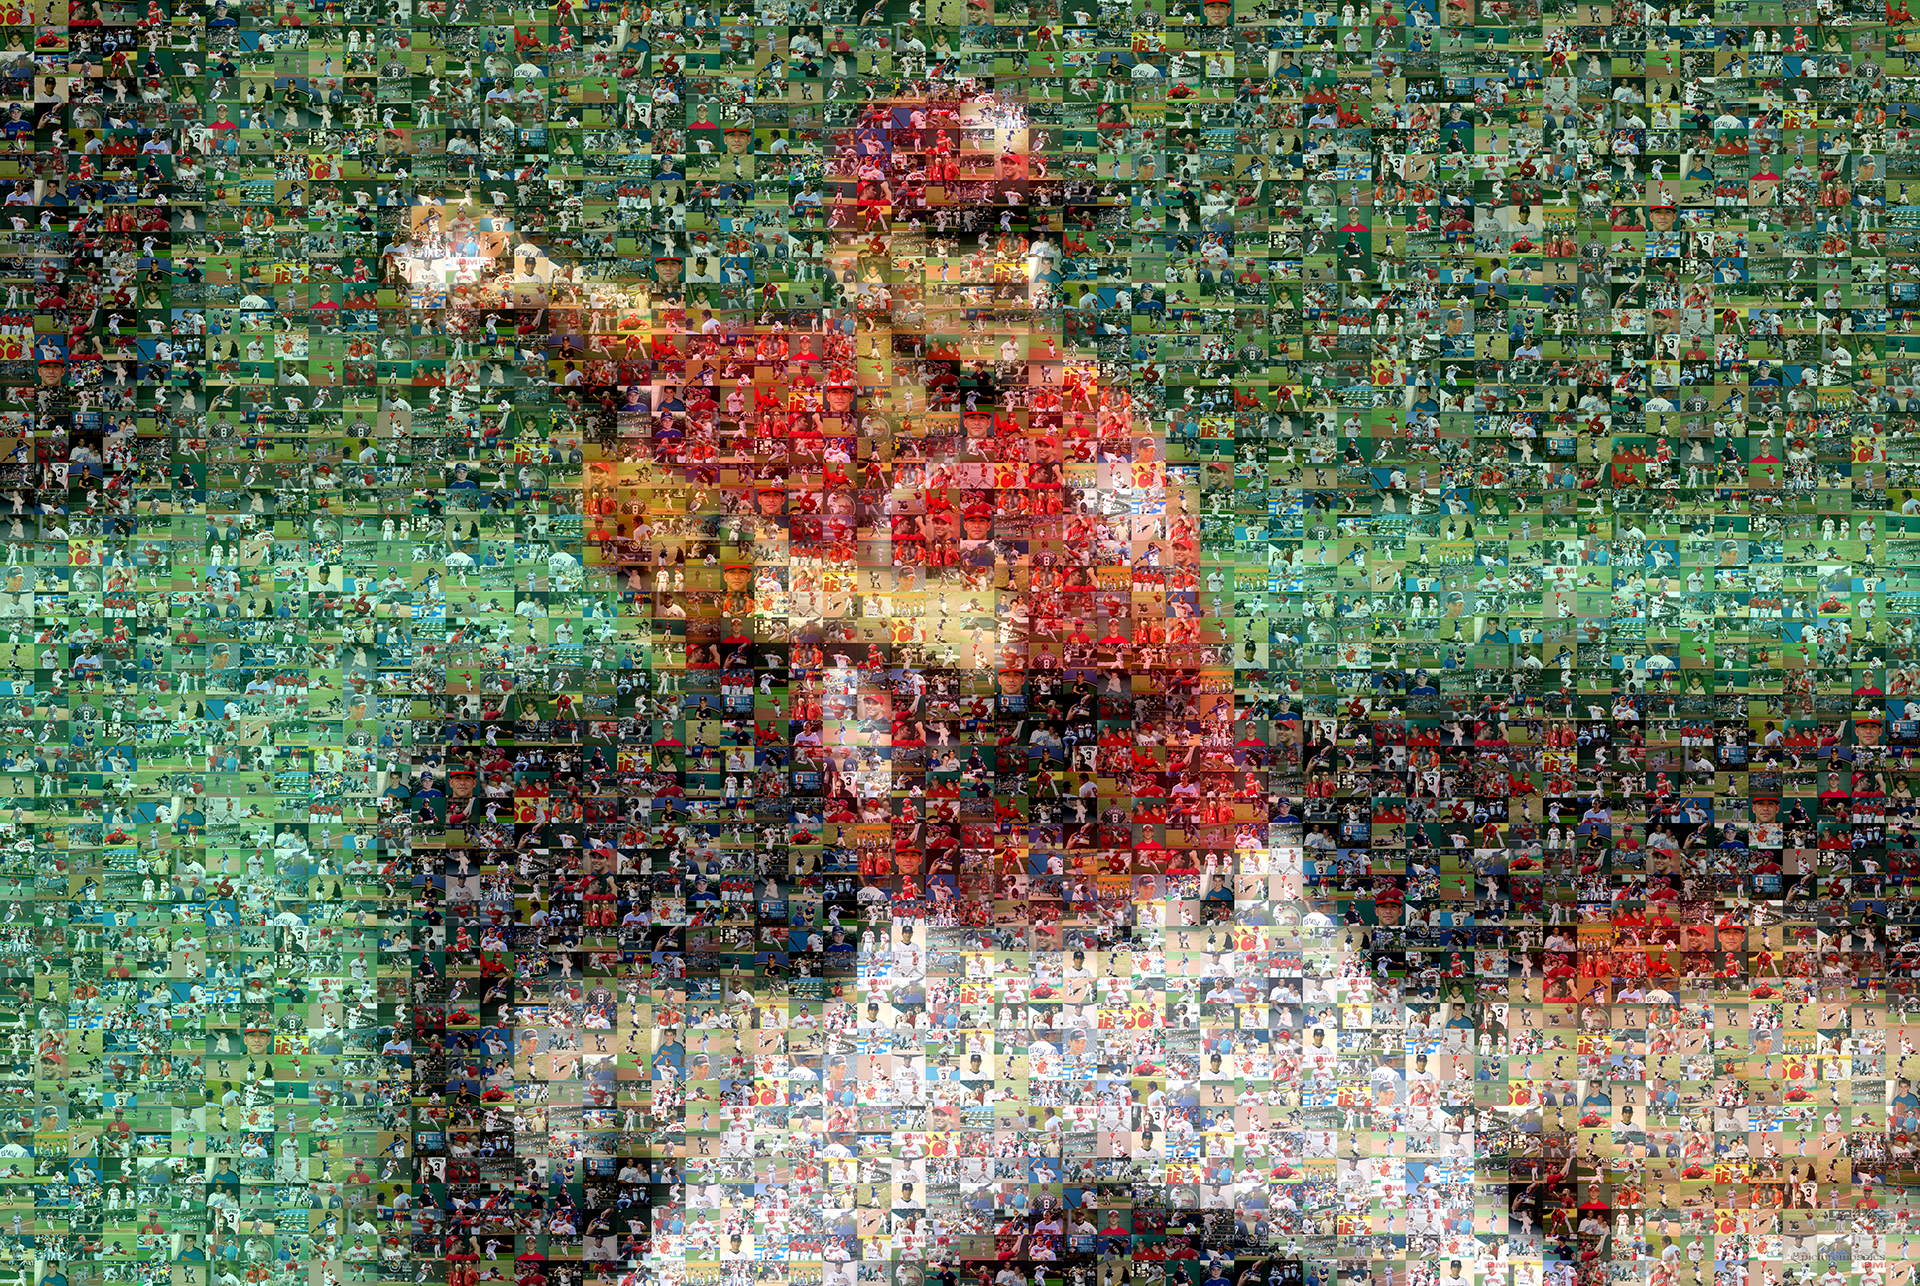 photo mosaic created using 161 baseball photos